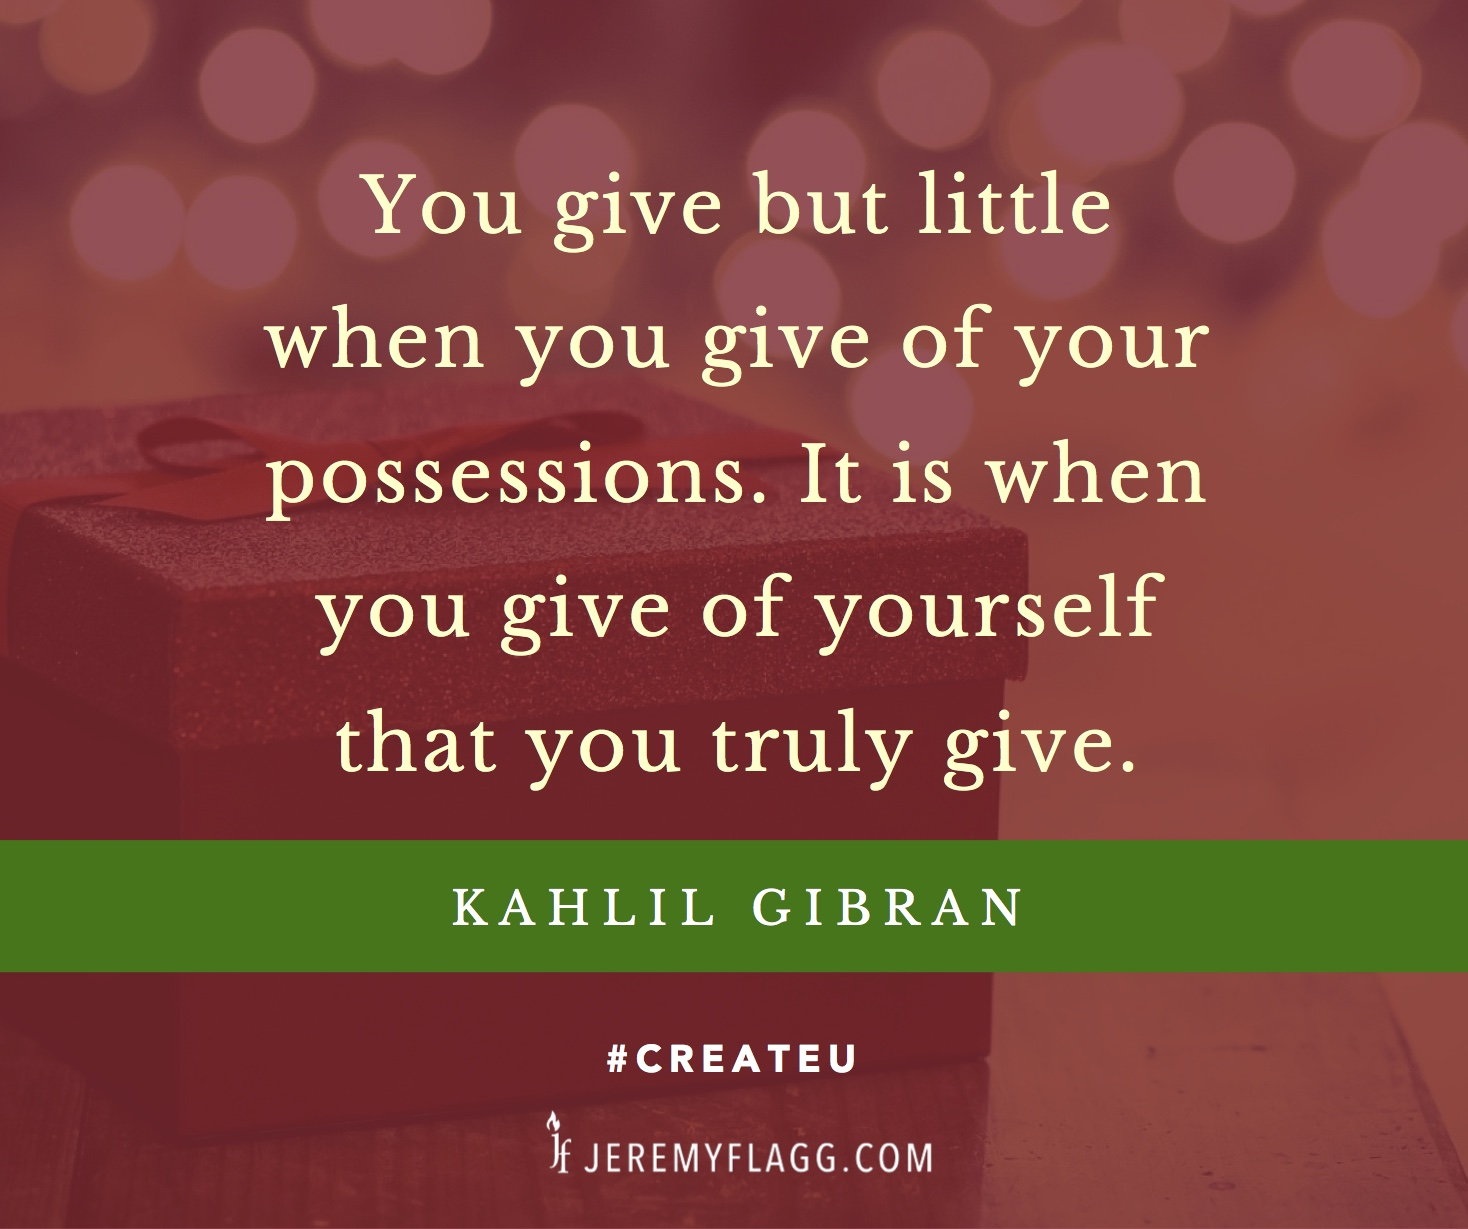 Give-of-yourself-Kahlil-Gibran-FB